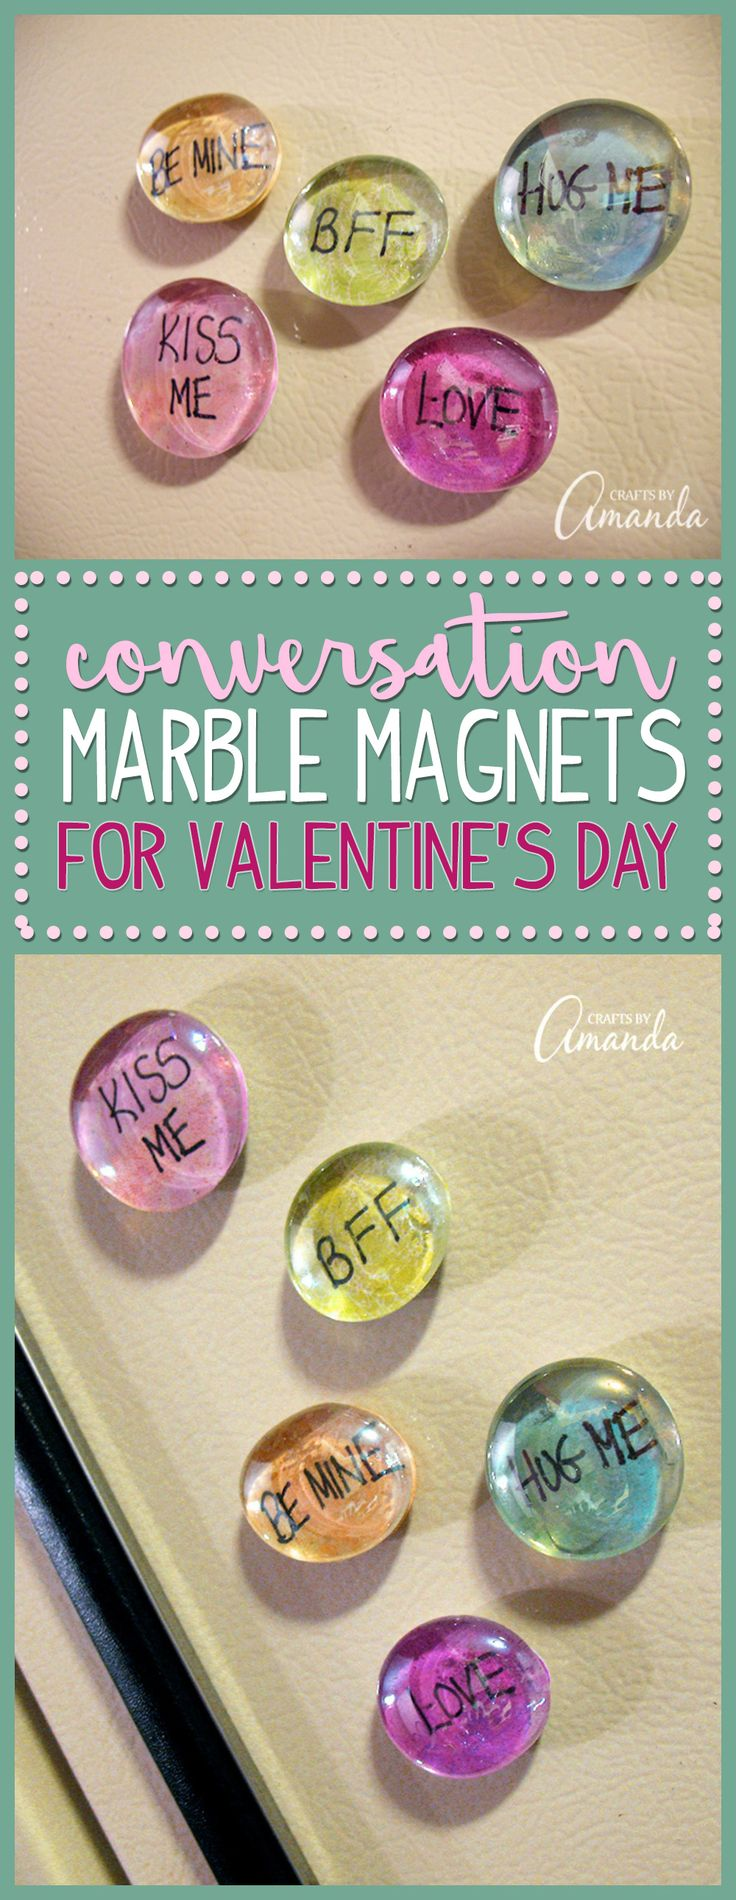 These conversation marble magnets are a simple craft for Valentine's Day. They take only minutes to make and are an inexpensive gift for neighbors, friends and teachers. Inspired by conversation hearts, these glass gem magnets are a great Valentine's Day project for adults and for kids.